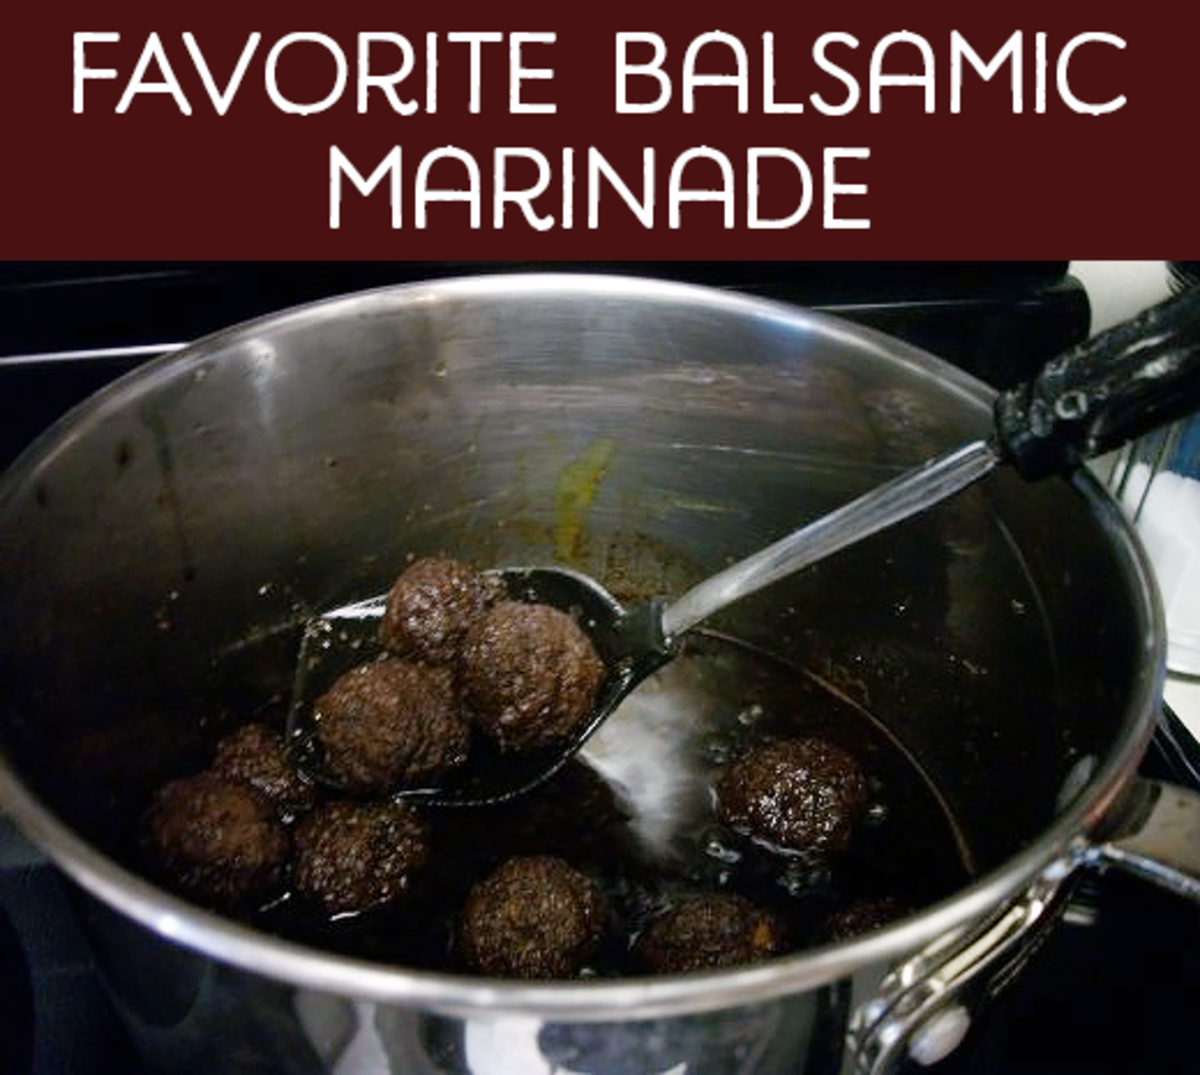 Meatballs simmered in a sauce made with balsamic vinegar, olive oil, soy sauce, garlic powder, and basil.